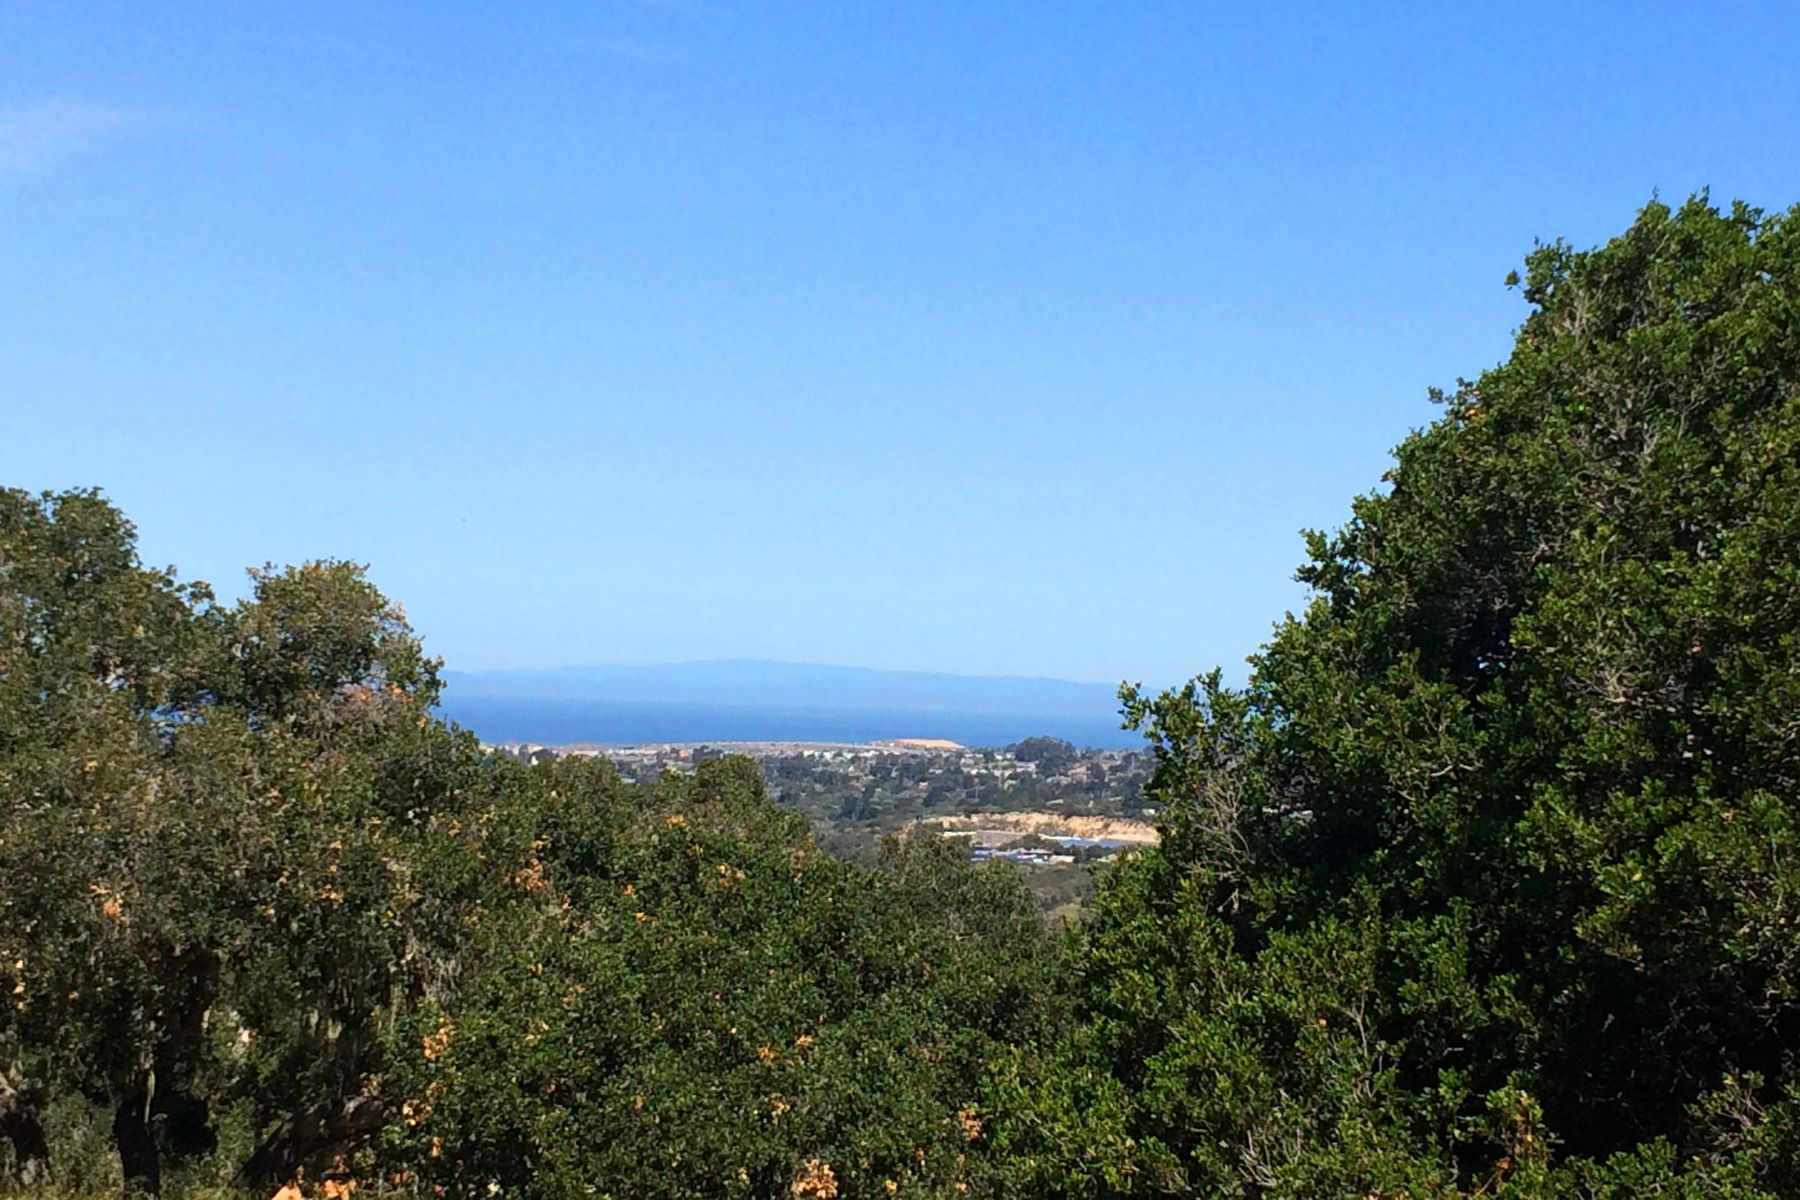 Land for Sale at Bay View Lot 130 8220 Manjares (Lot 130) Monterey, California 93940 United States